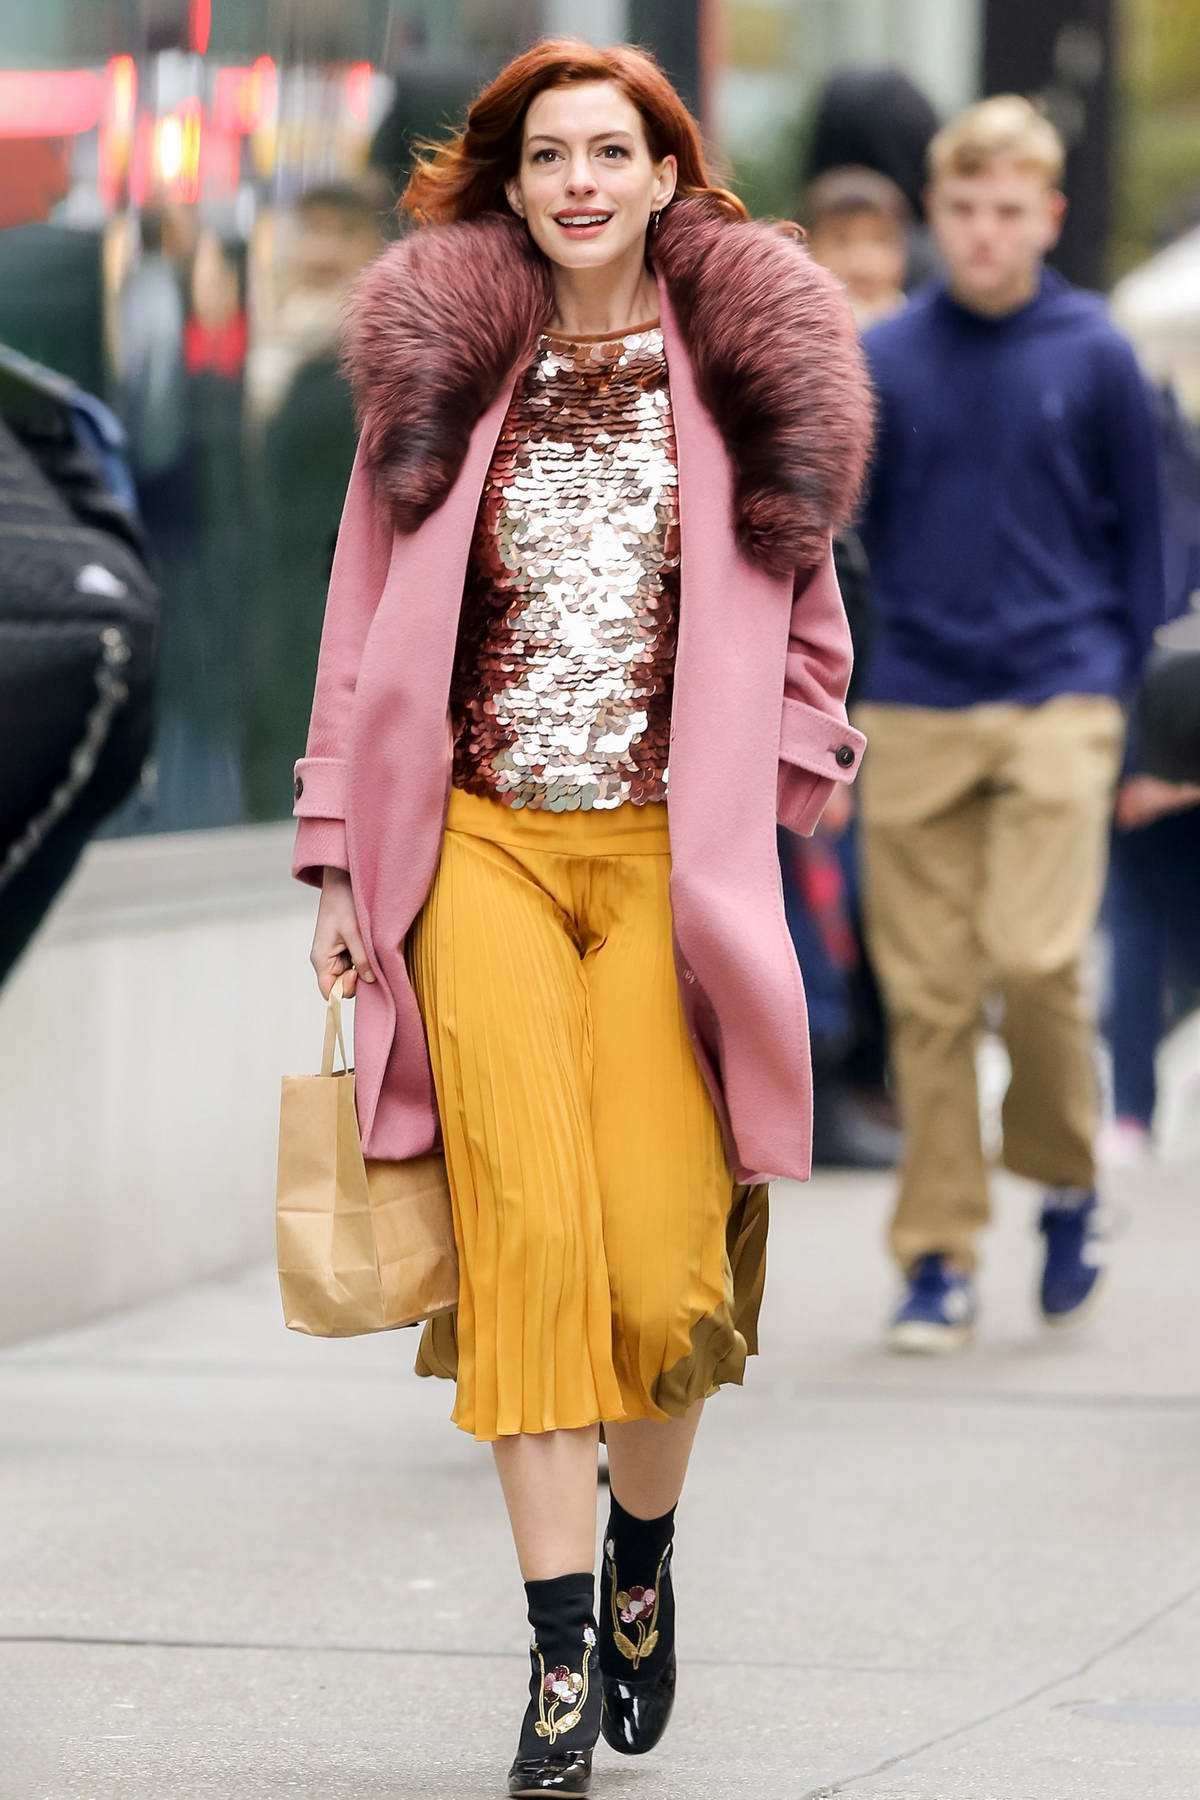 Anne Hathaway looks striking in a fur-trimmed pink coat paired with sequined top and yellow shirt as she steps out in New York City